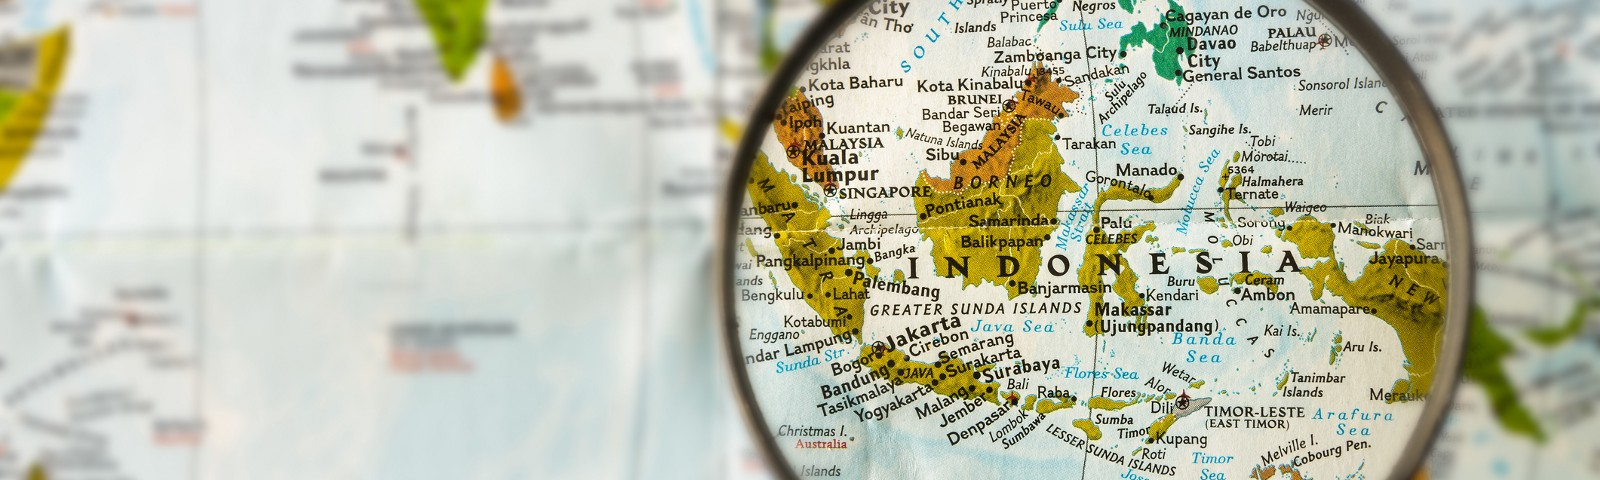 World map with magnifying glass focused on Indonesia